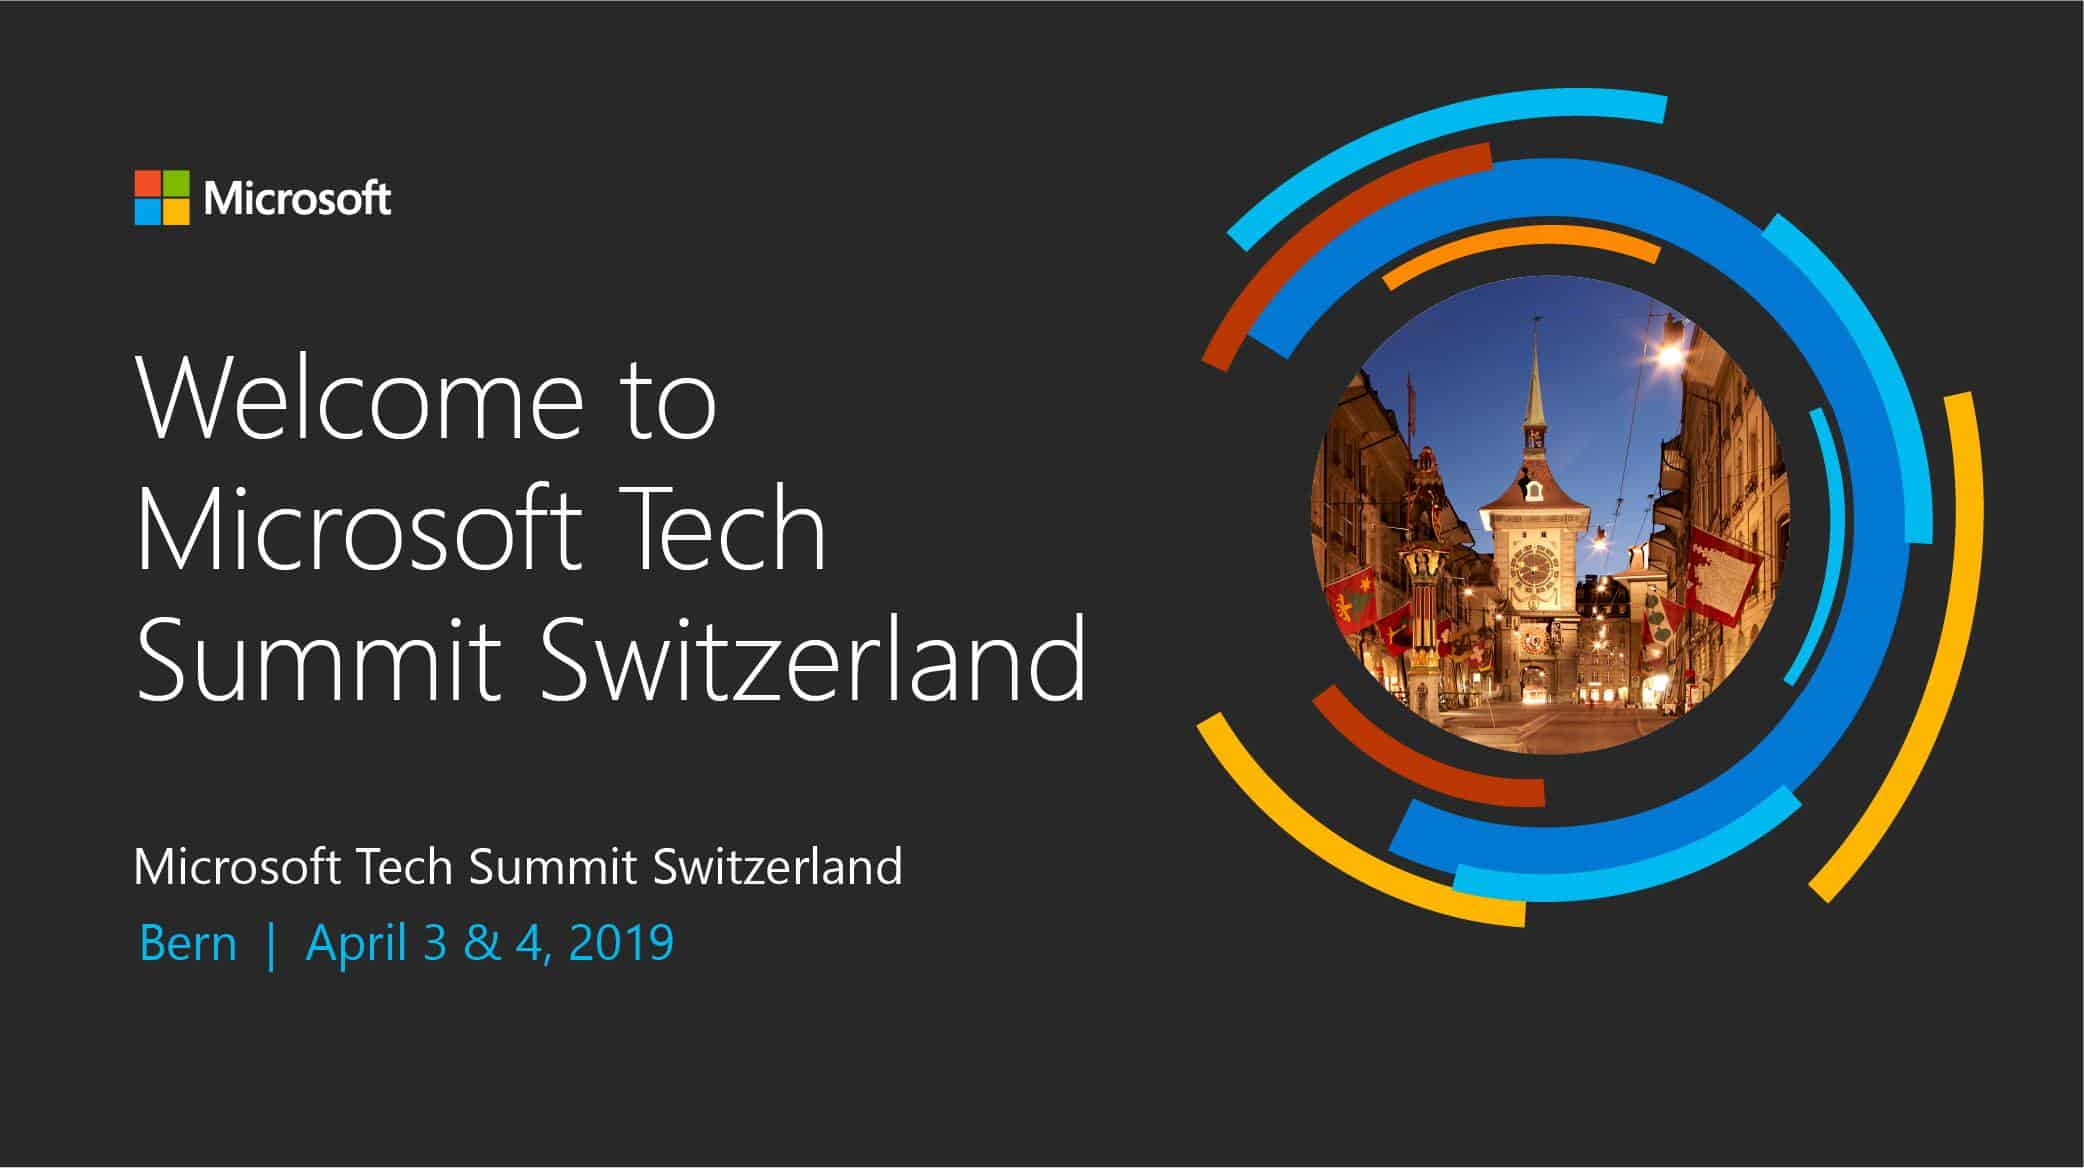 Microsoft Tech Summit Switzerland 2019